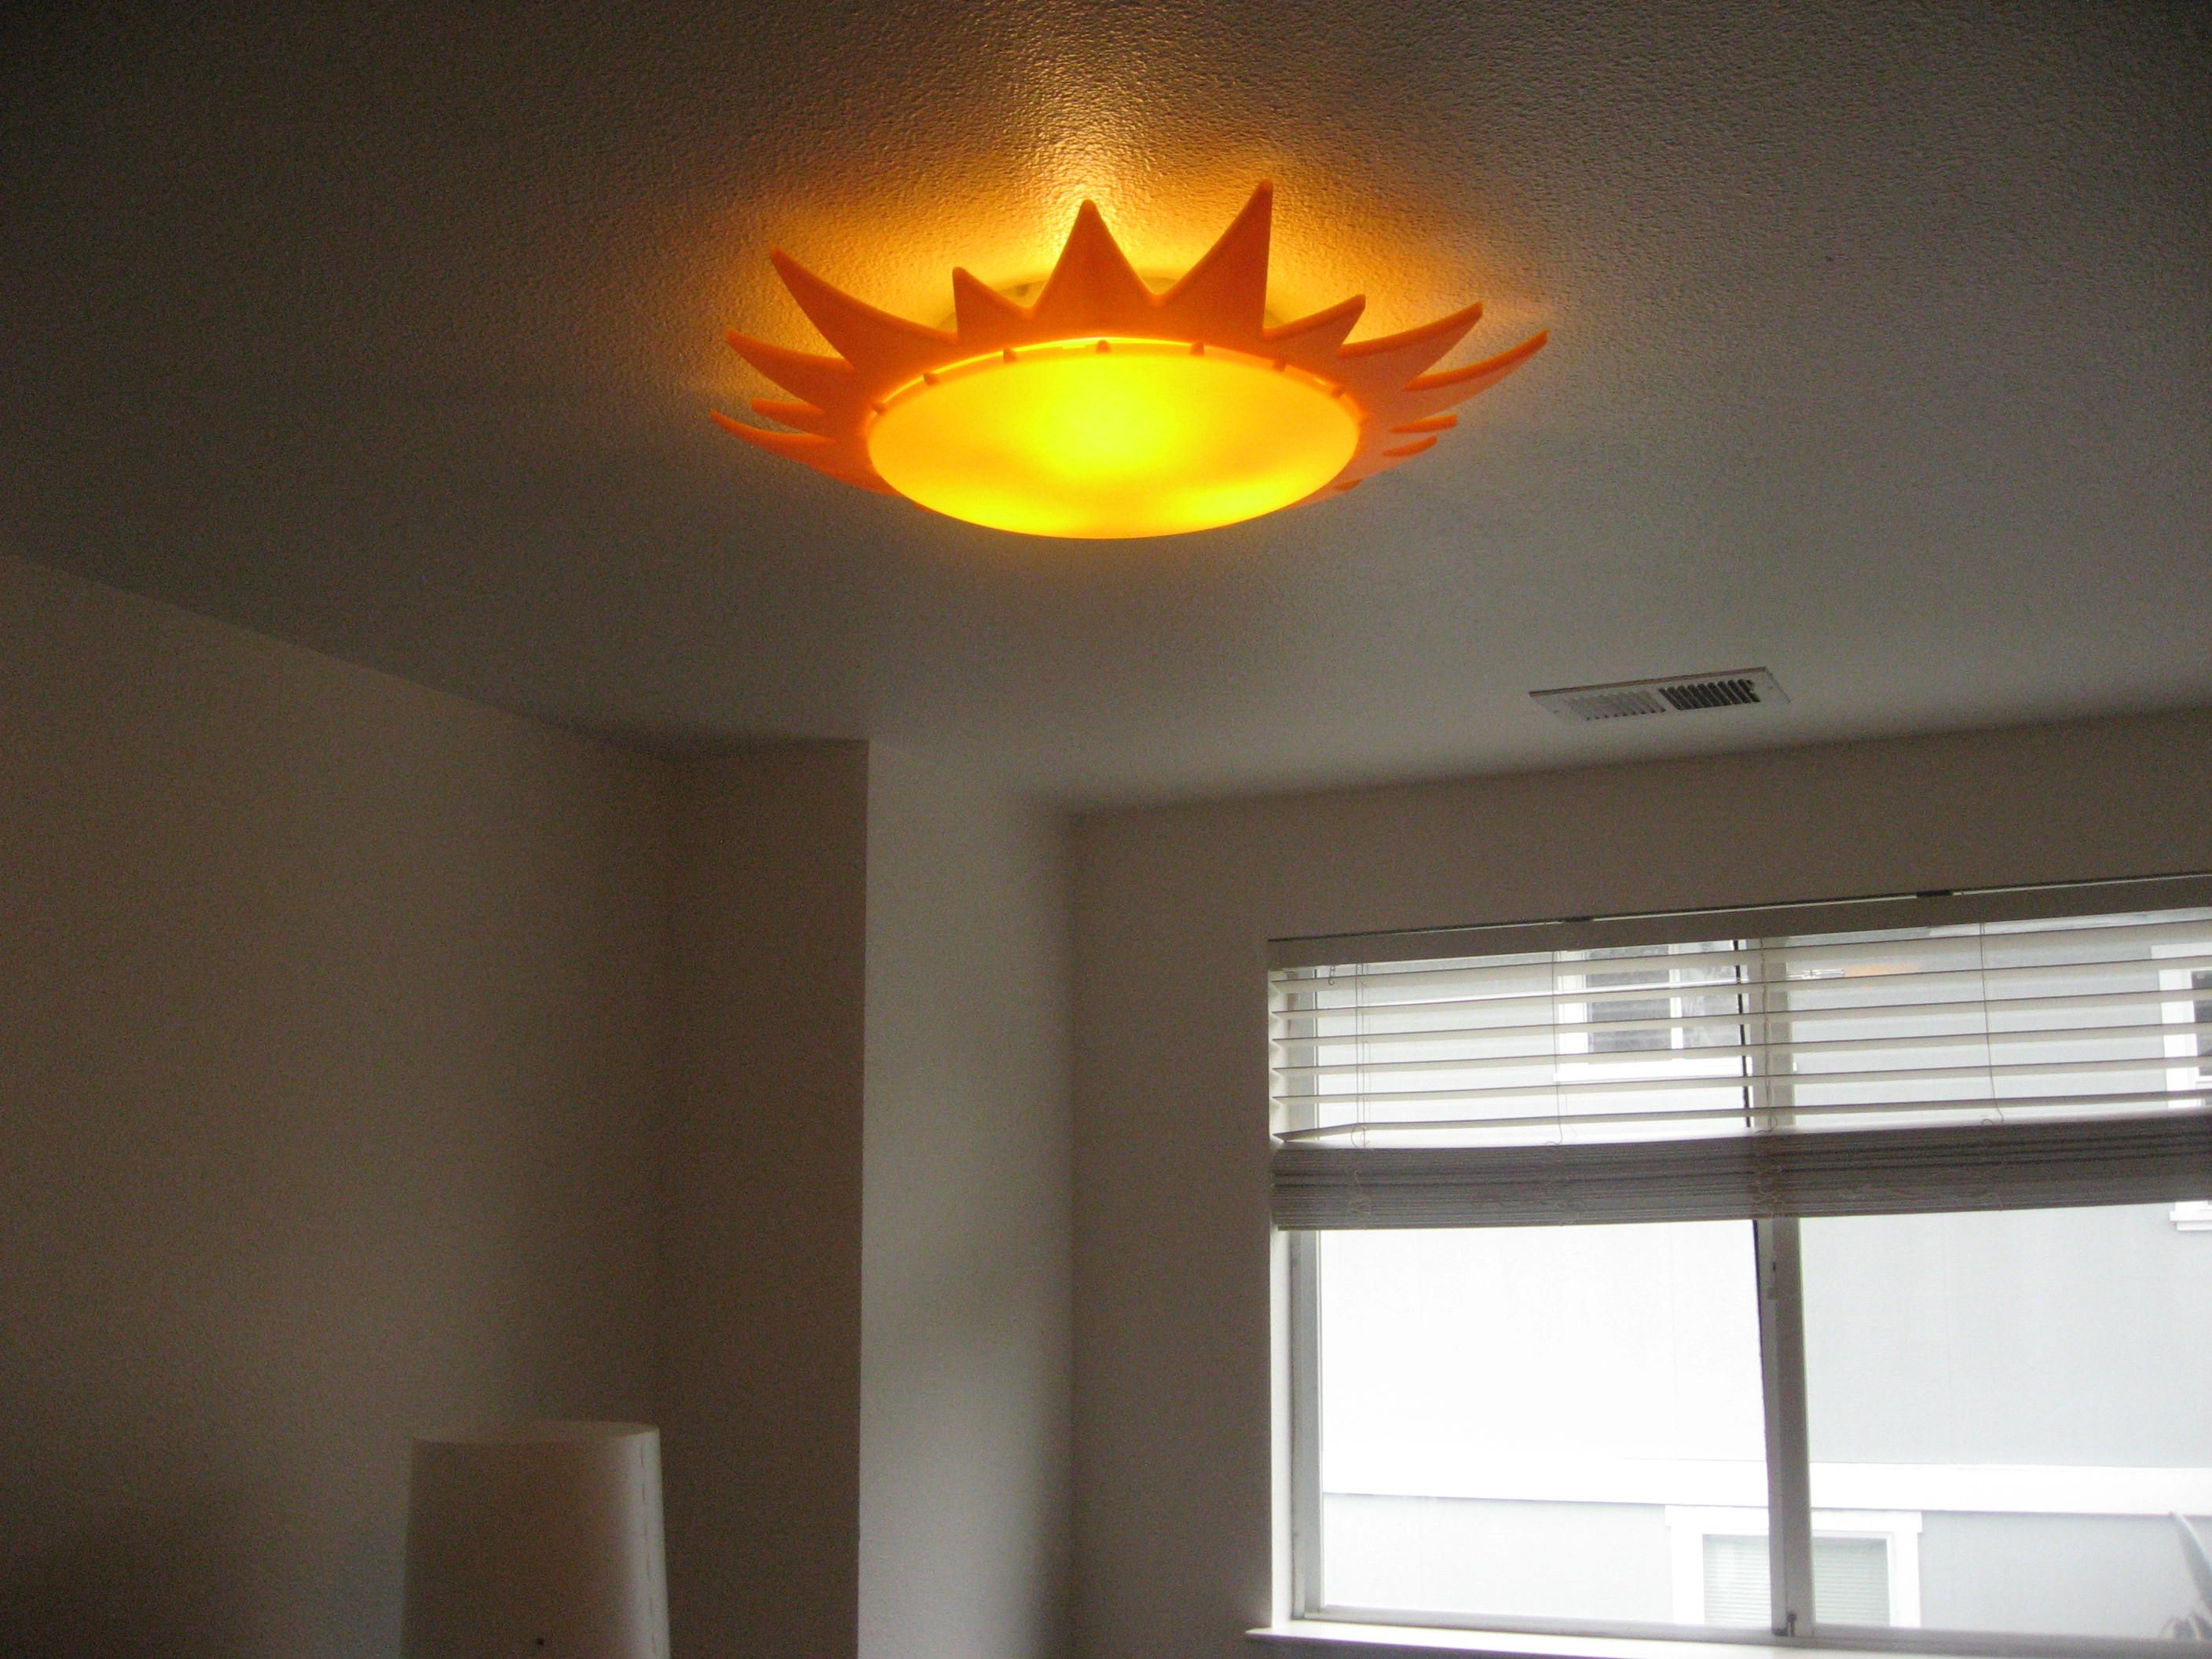 Lamp For Toddler Room Ikea Sun Ceiling Lamp For Kids Room Sadie 39s New Room